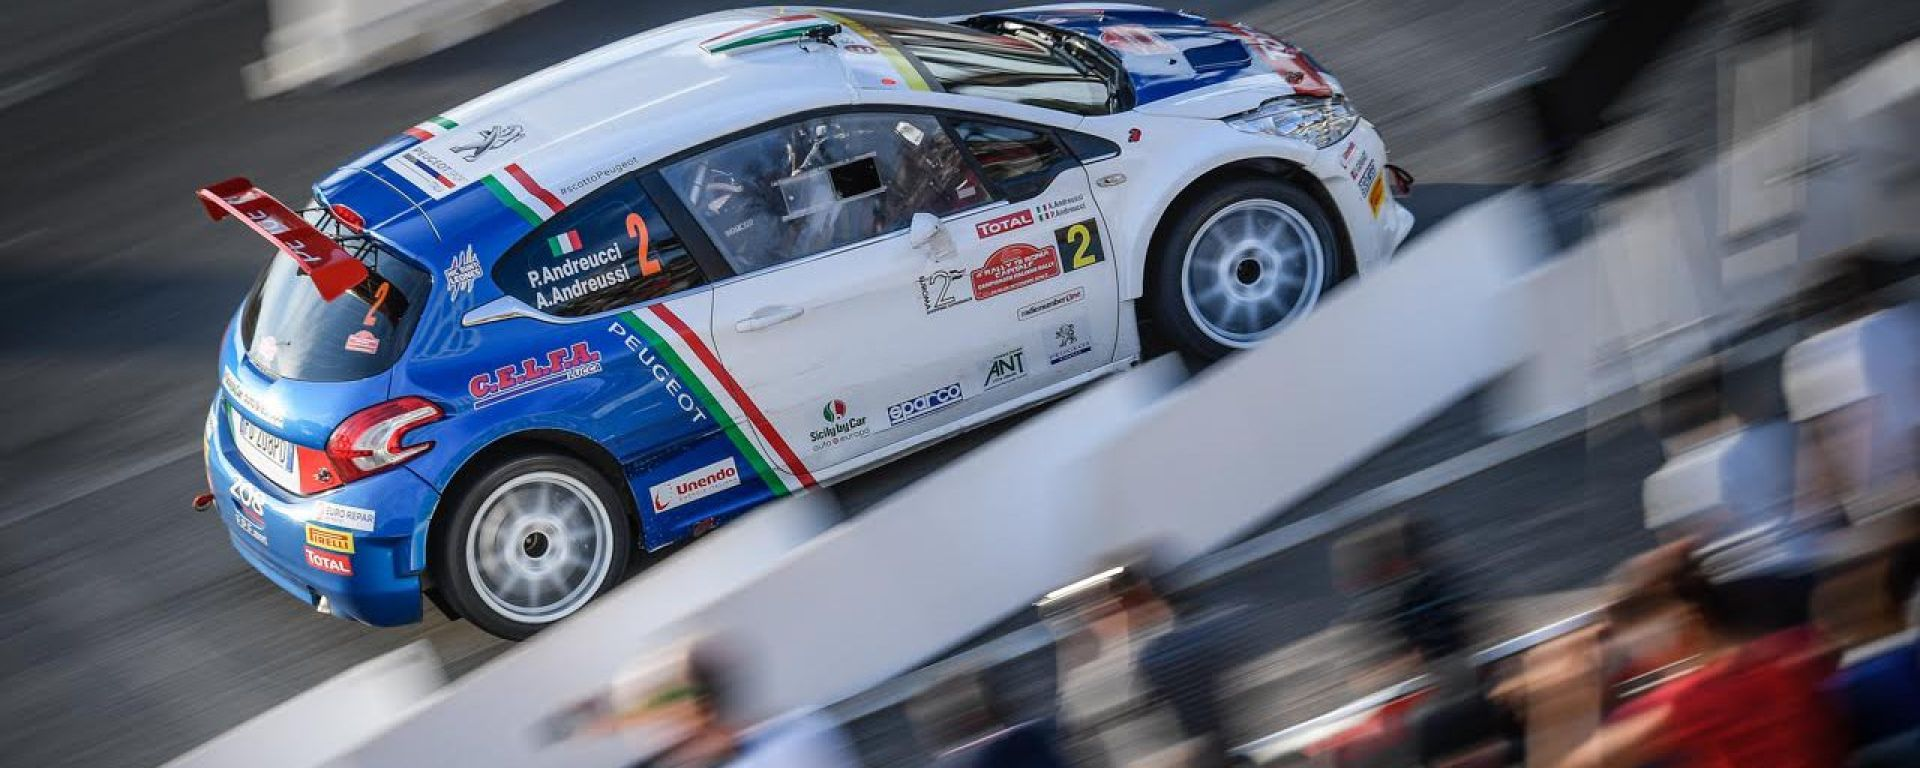 CIR, Rally Roma Capitale: le pagelle